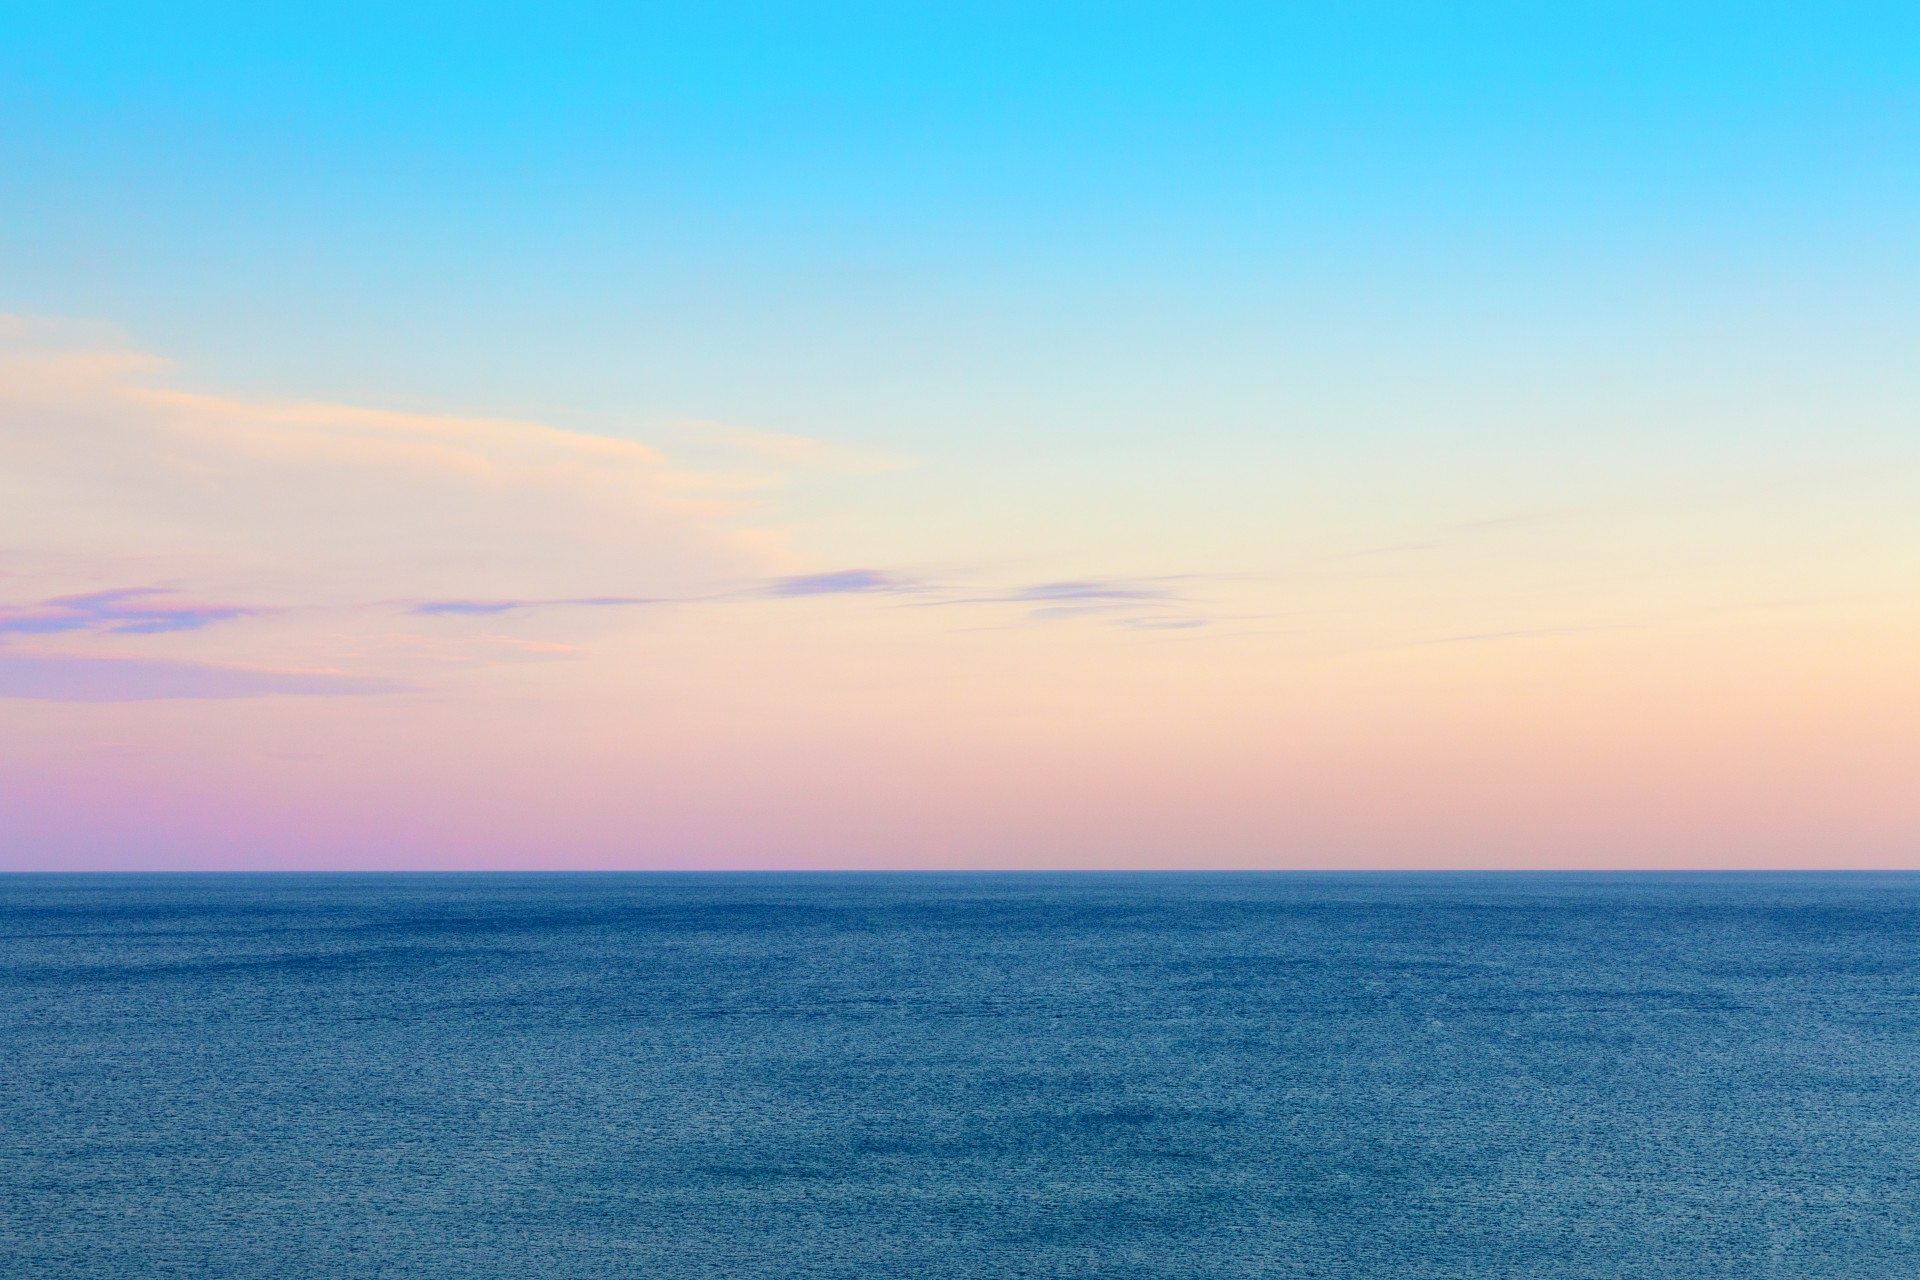 Twilight Sky And Sea Free Stock Photo - Public Domain Pictures